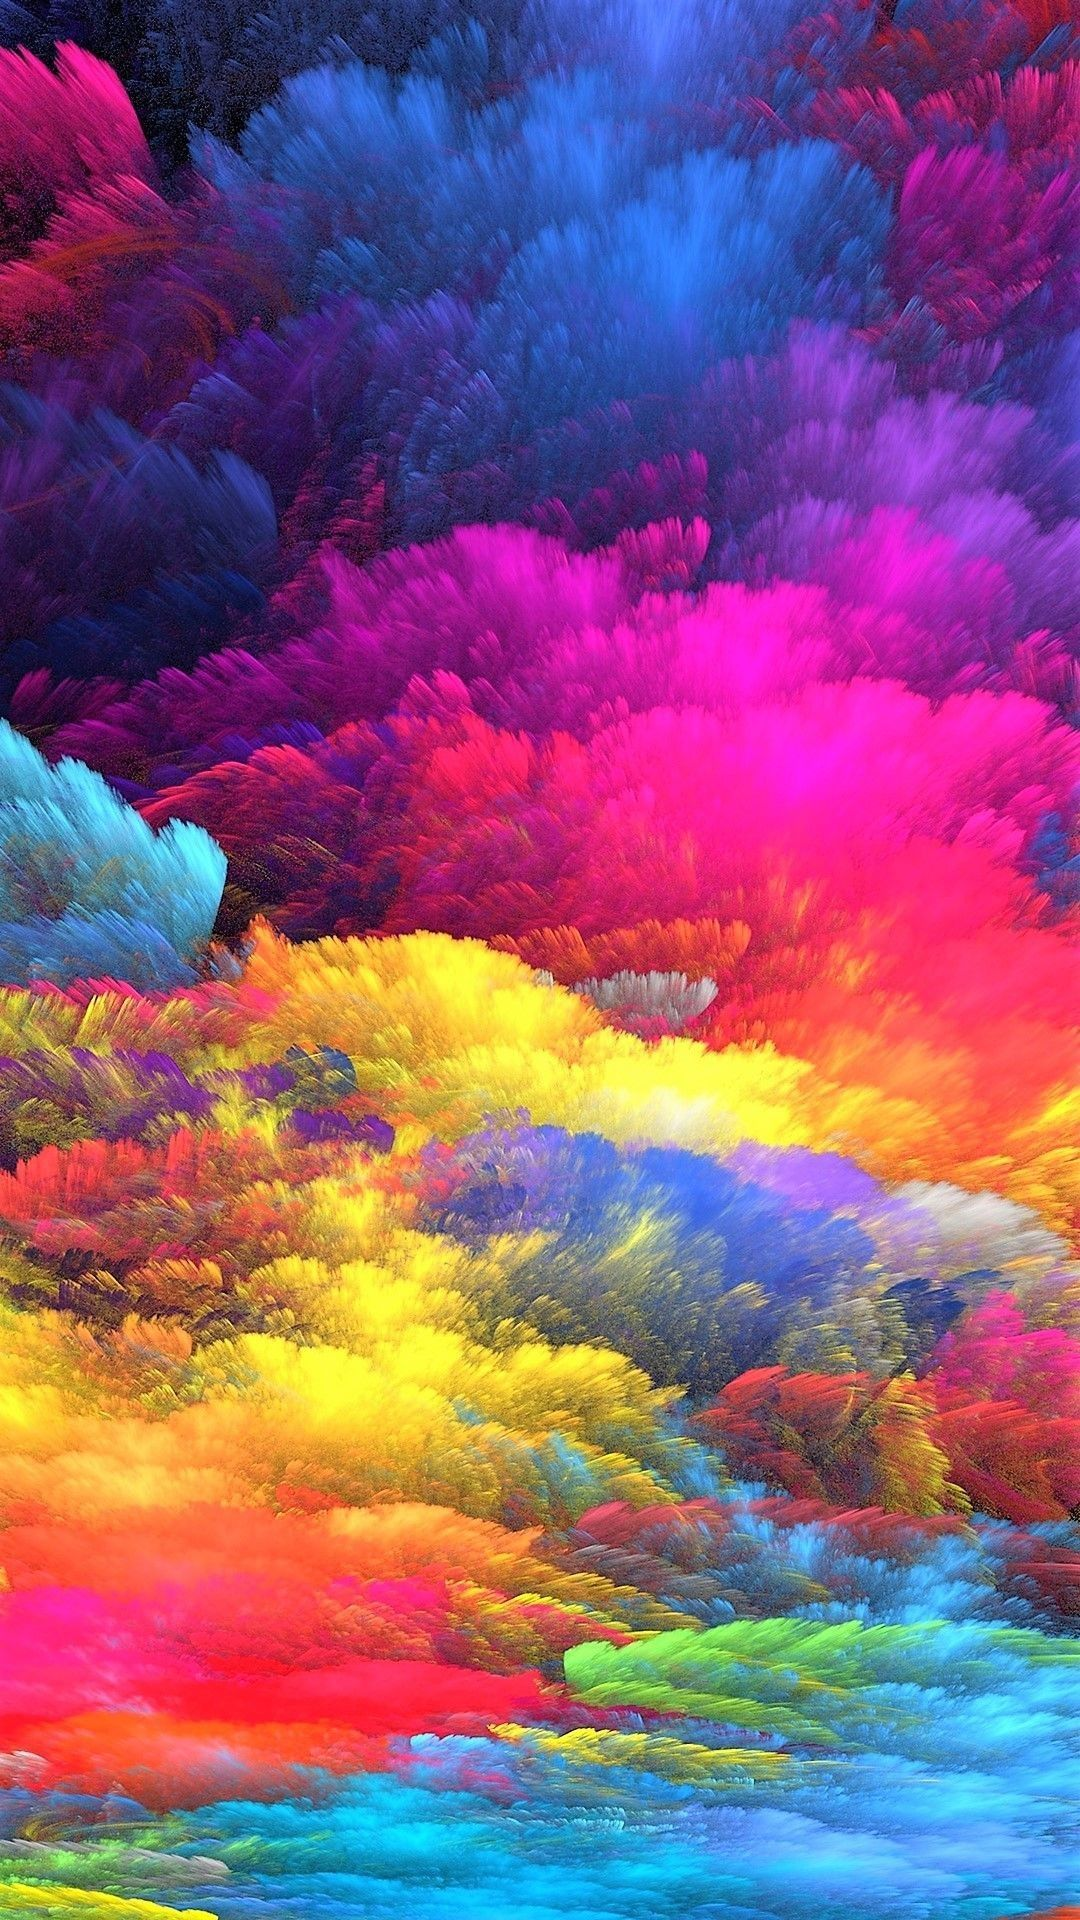 4k Wallpaper In 2020 Colorful Art Art Abstract